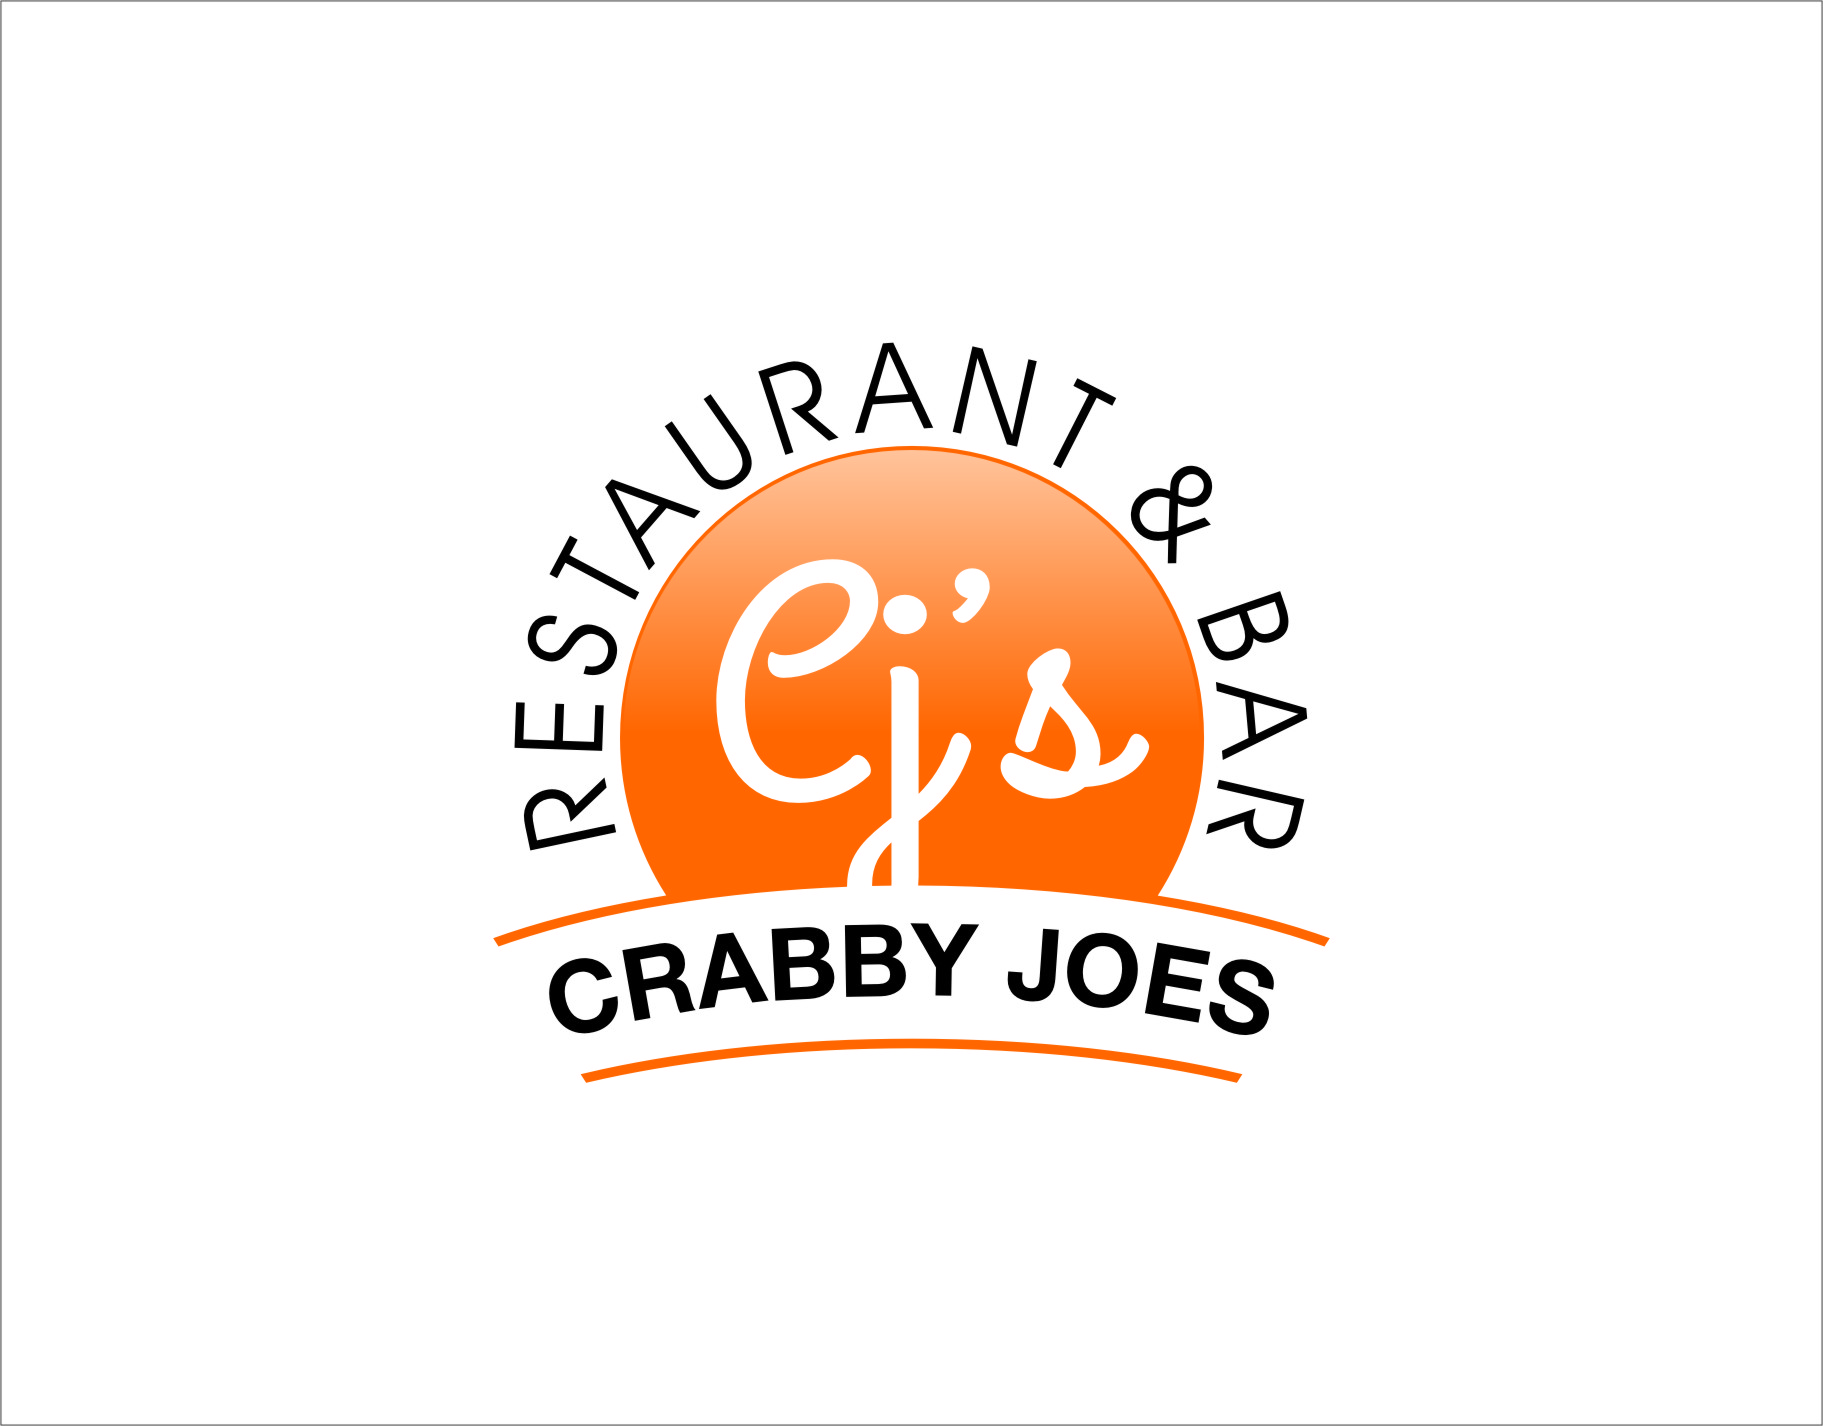 Logo Design by Ngepet_art - Entry No. 82 in the Logo Design Contest Inspiring Logo Design for Cj's.